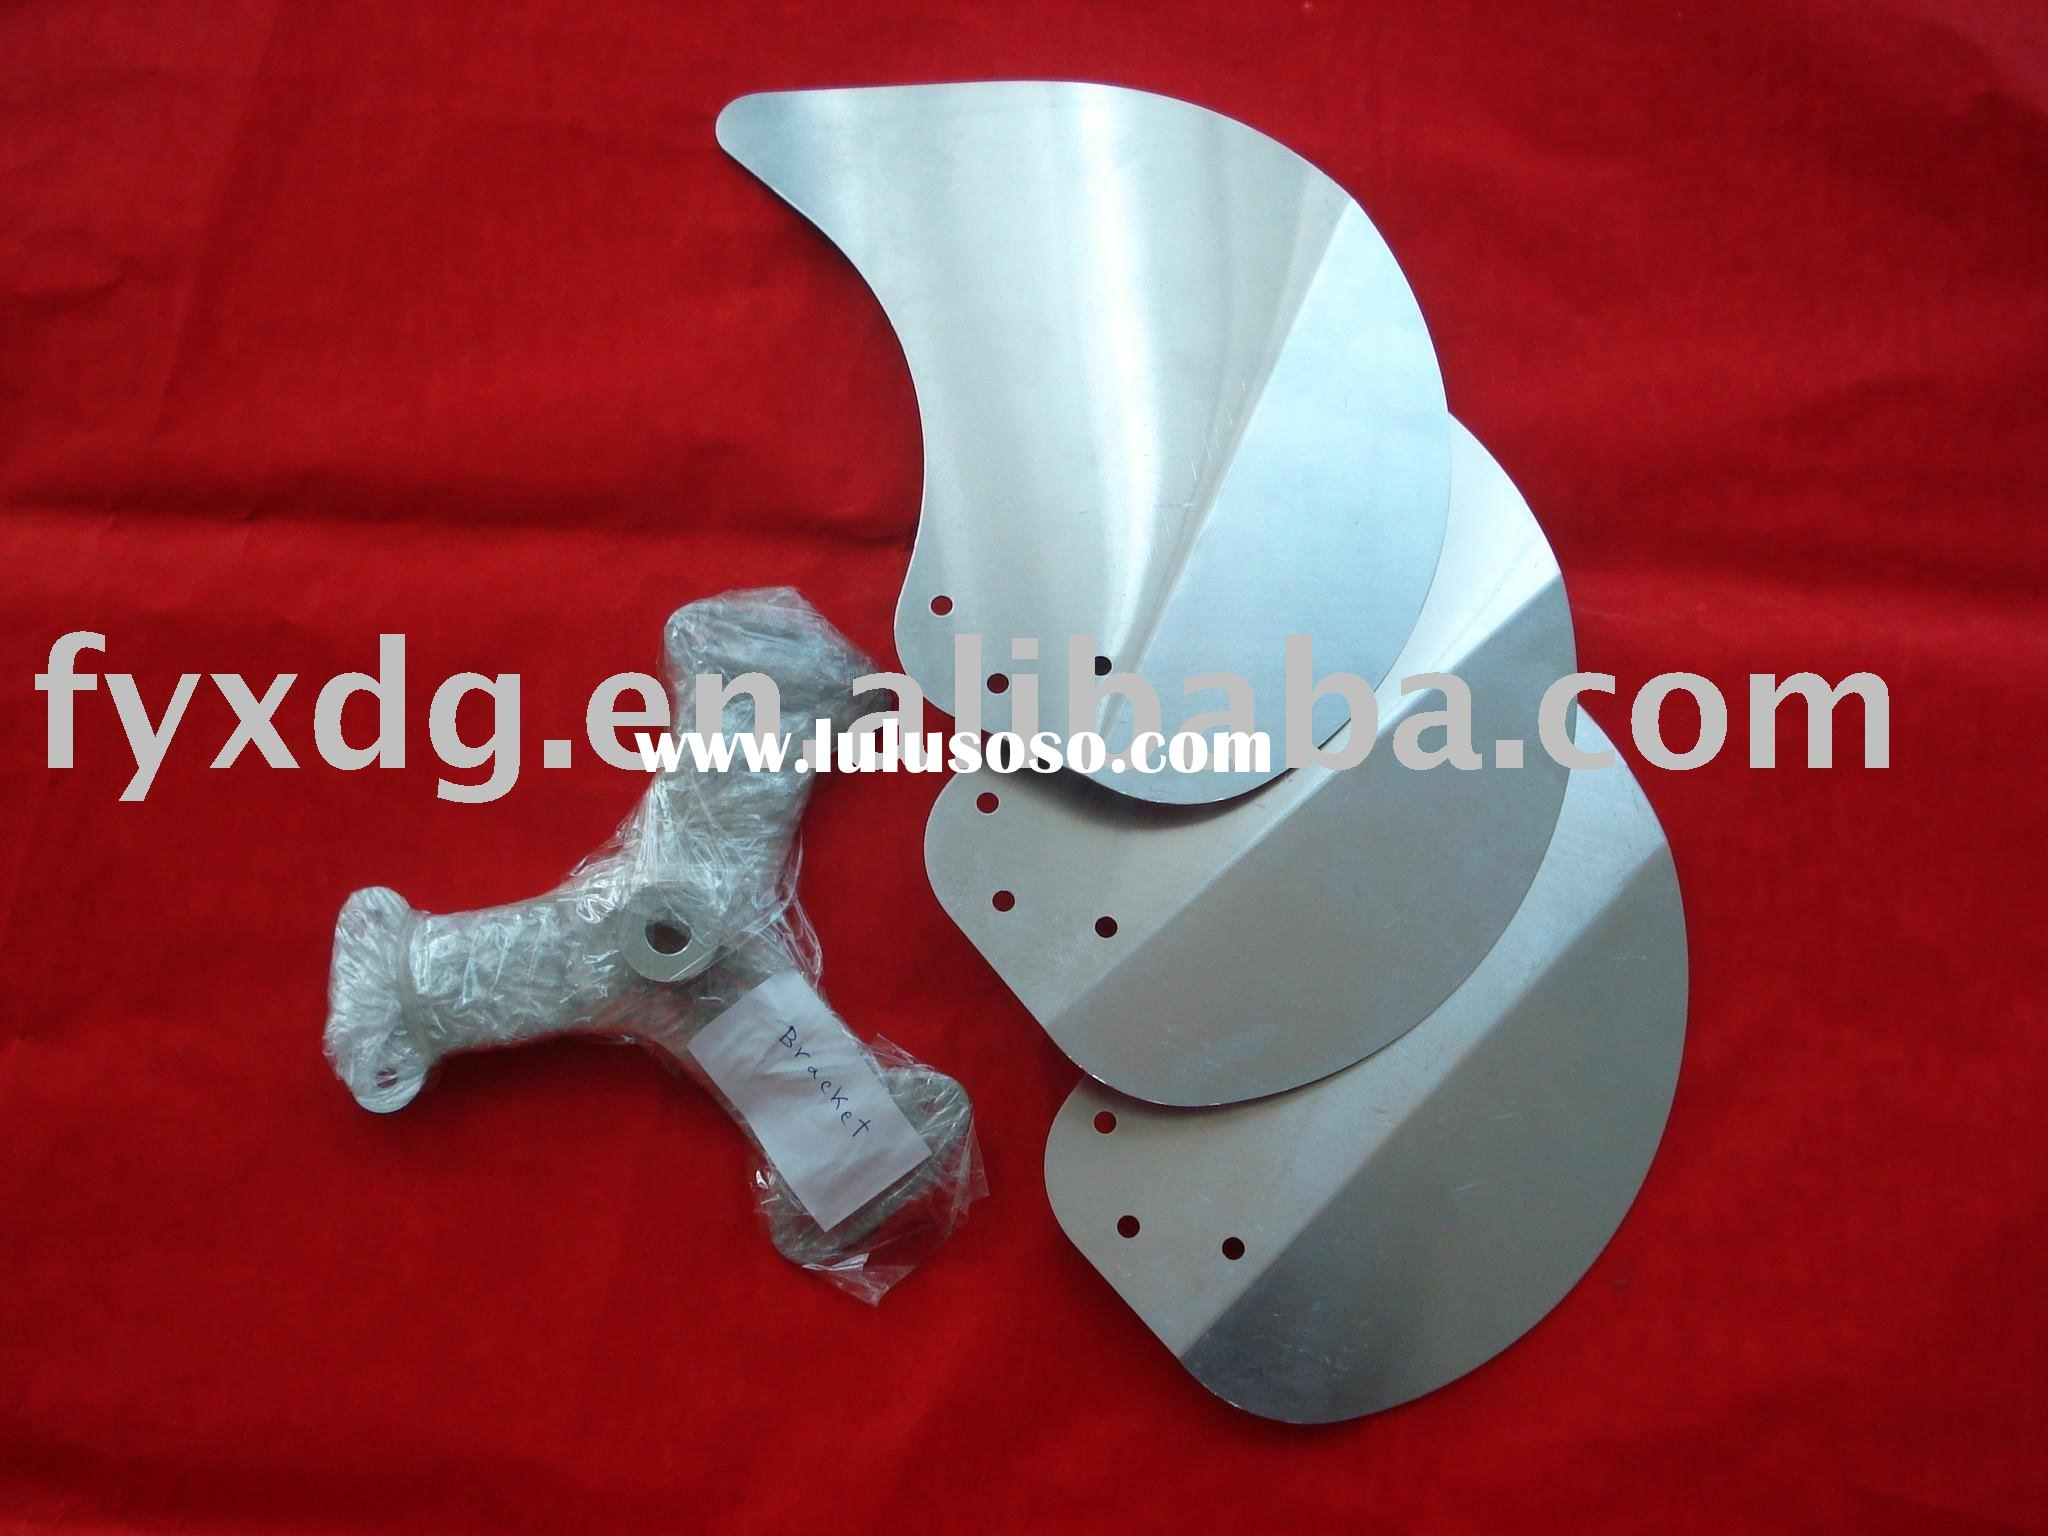 18 Inch box fan metal blade